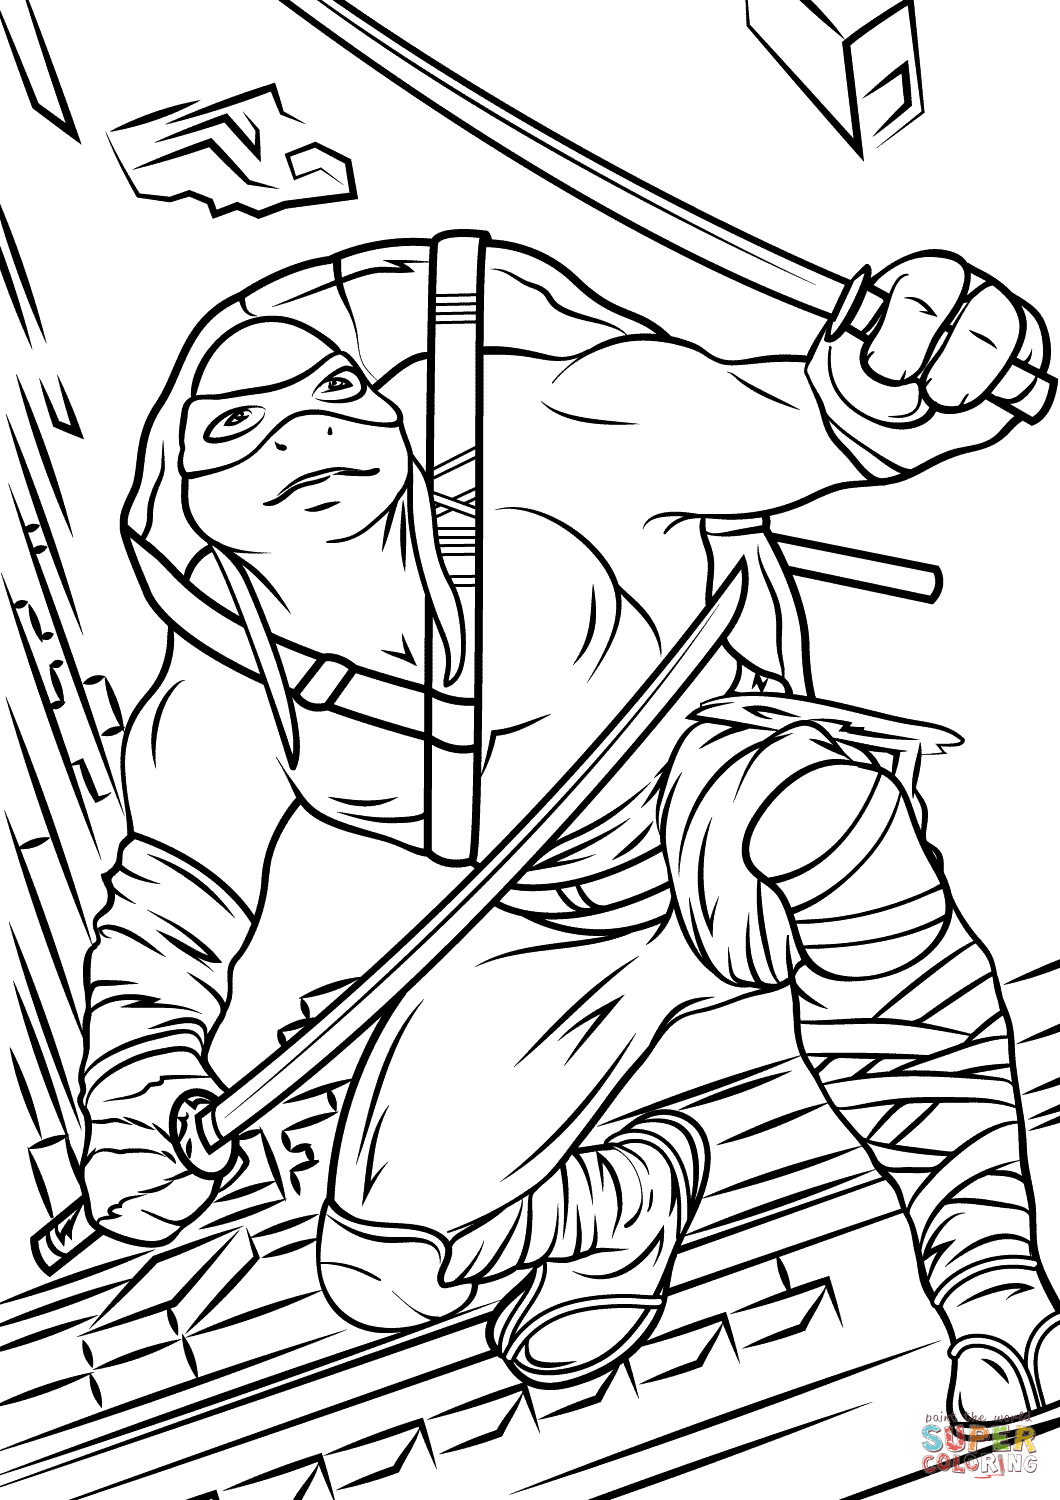 teenage ninja turtles coloring pages craftoholic teenage mutant ninja turtles coloring pages coloring turtles teenage ninja pages